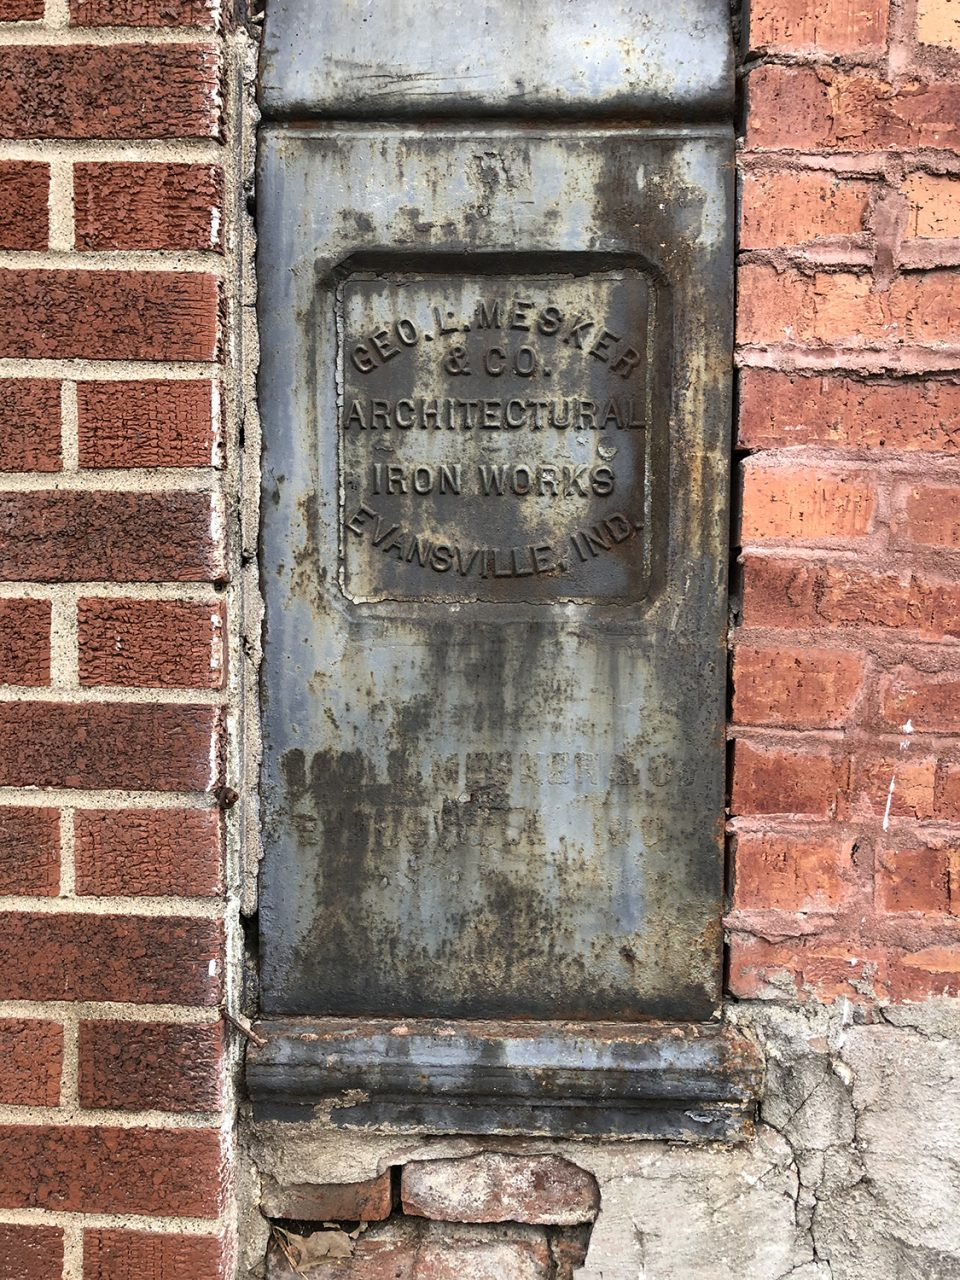 Markers for historic George L. Mesker and Company Architectural Iron Works.